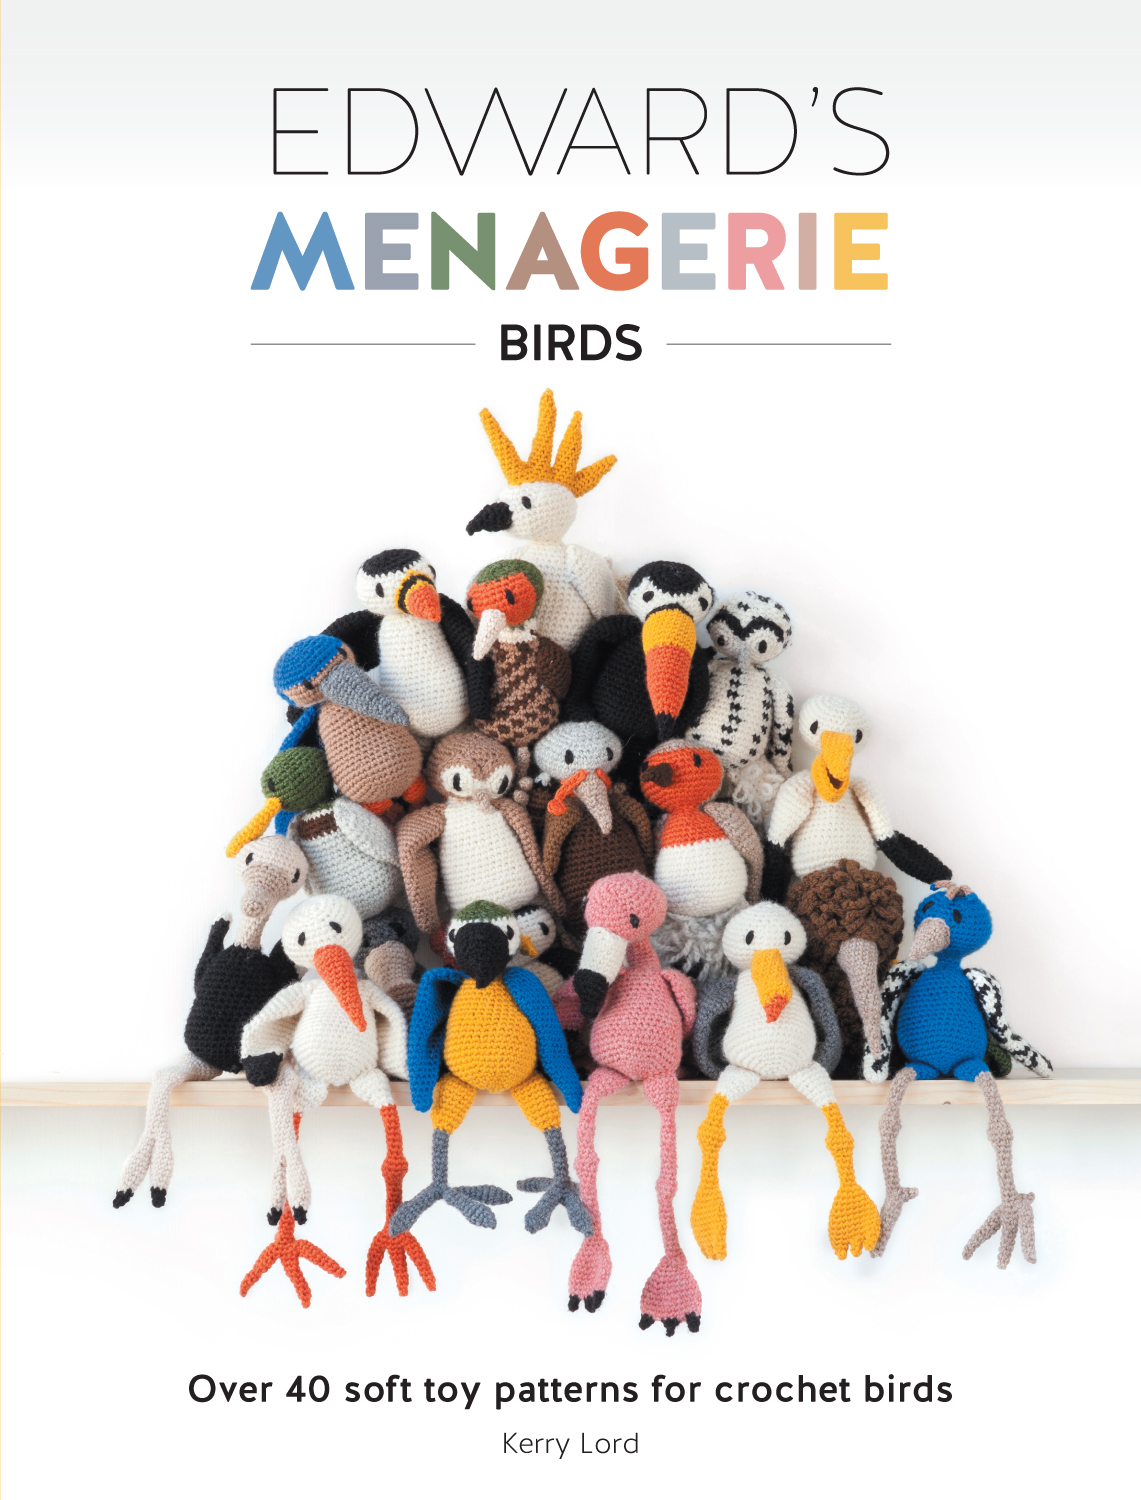 Edward's Menagerie - Birds: Over 14 Soft Toy Patterns for Crochet Birds: Book Review | www.thestitchinmommy.com